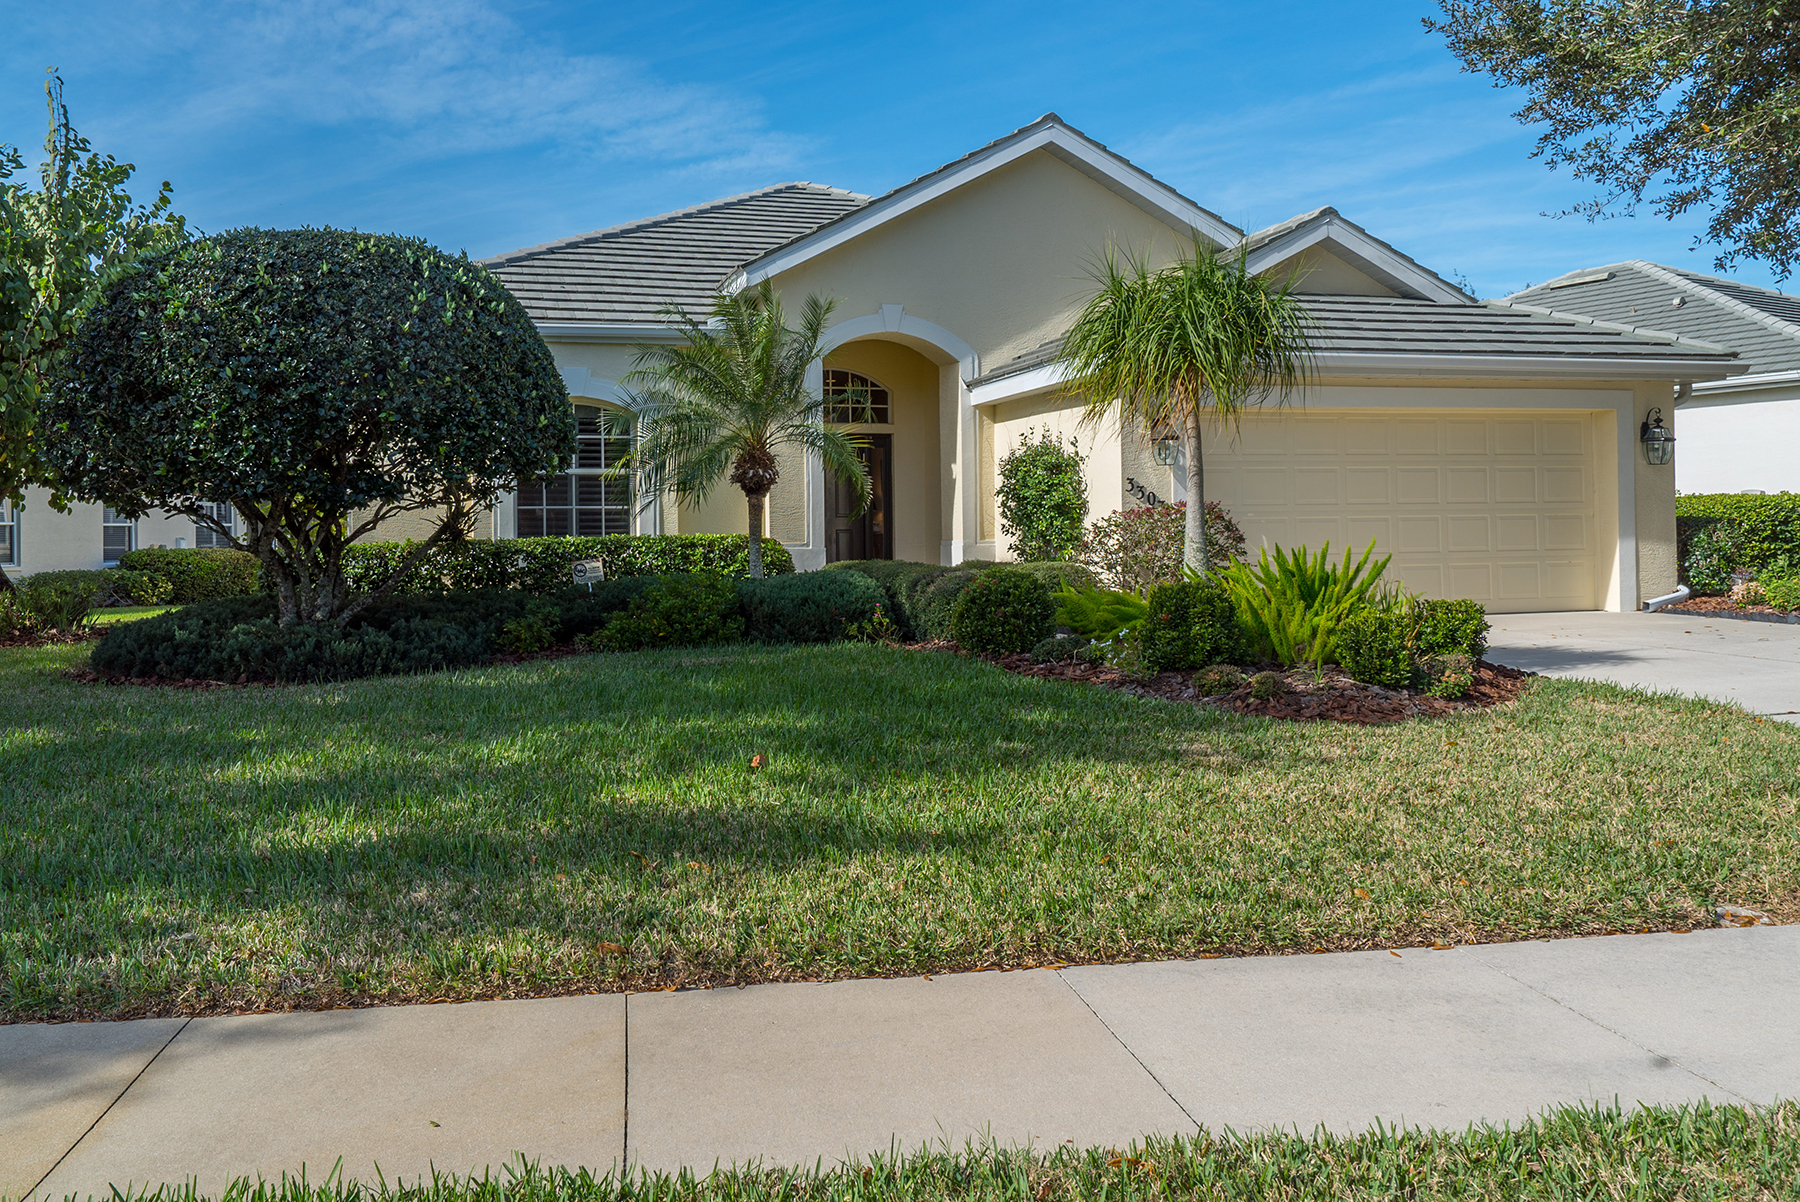 Single Family Home for Sale at RIVER WILDERNESS PHASE III 3303 Woodland Fern Dr Parrish, Florida 34219 United States